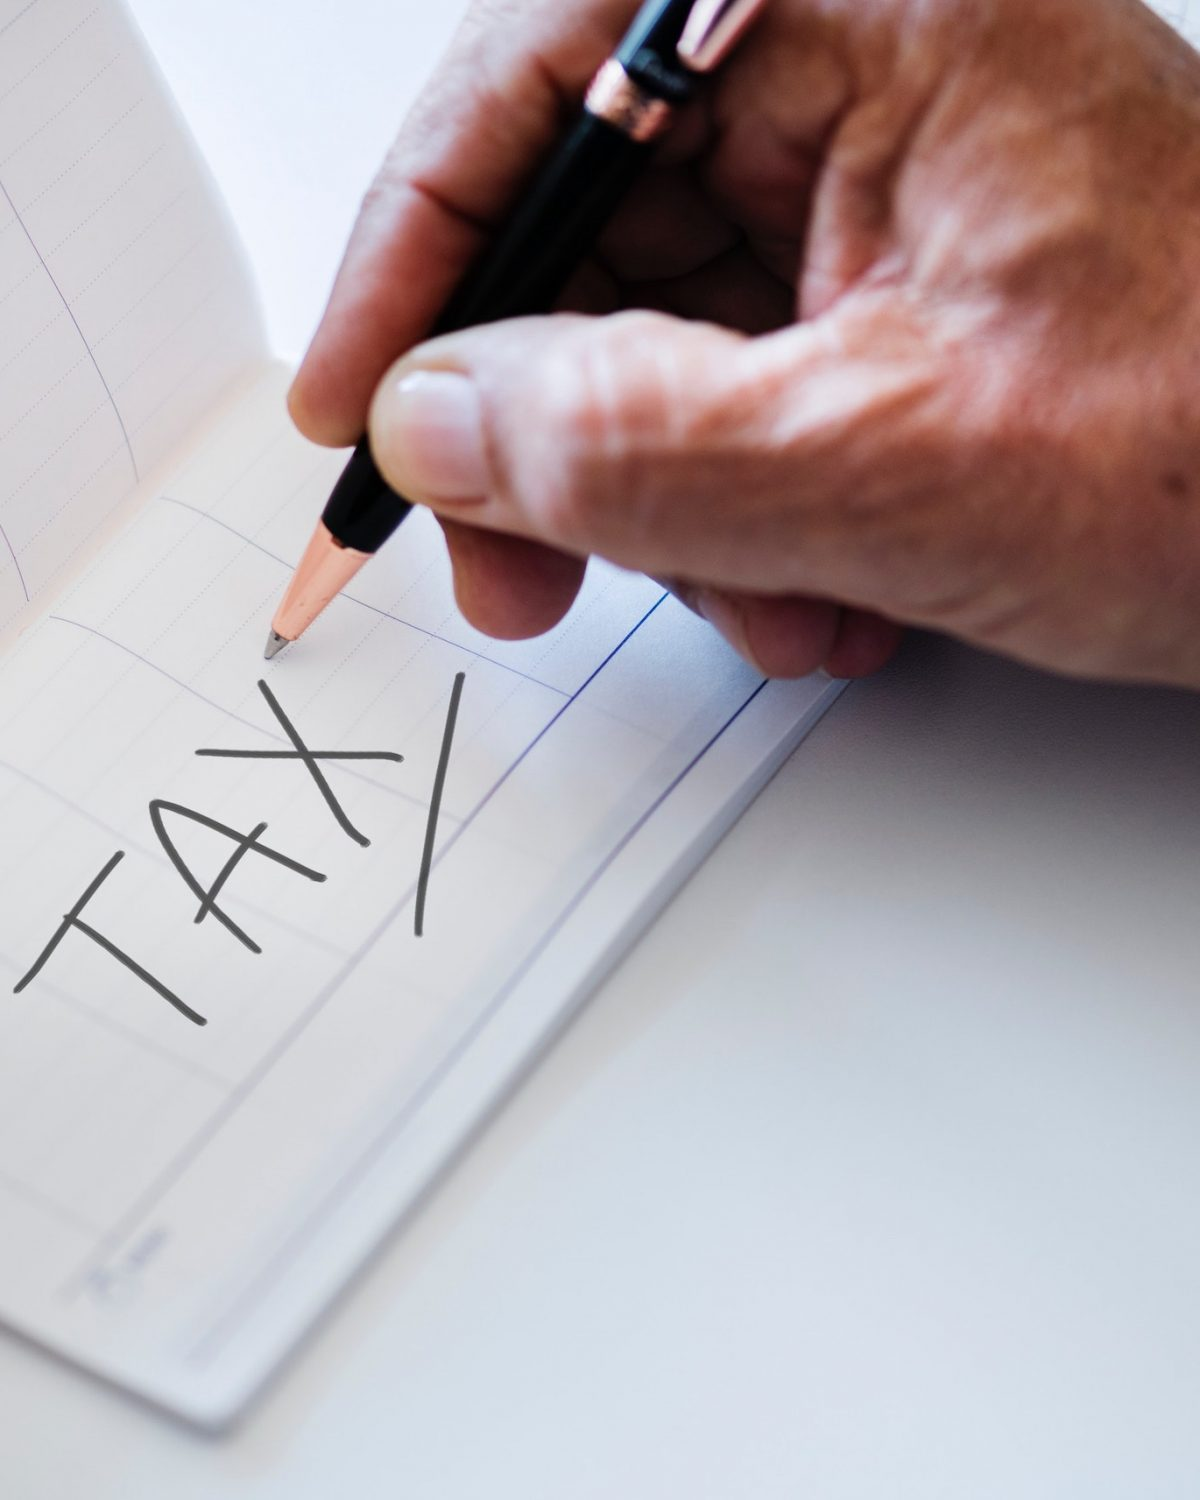 The Taxpayers' Guide: Brief Glossary of Making Tax Digital Jargon